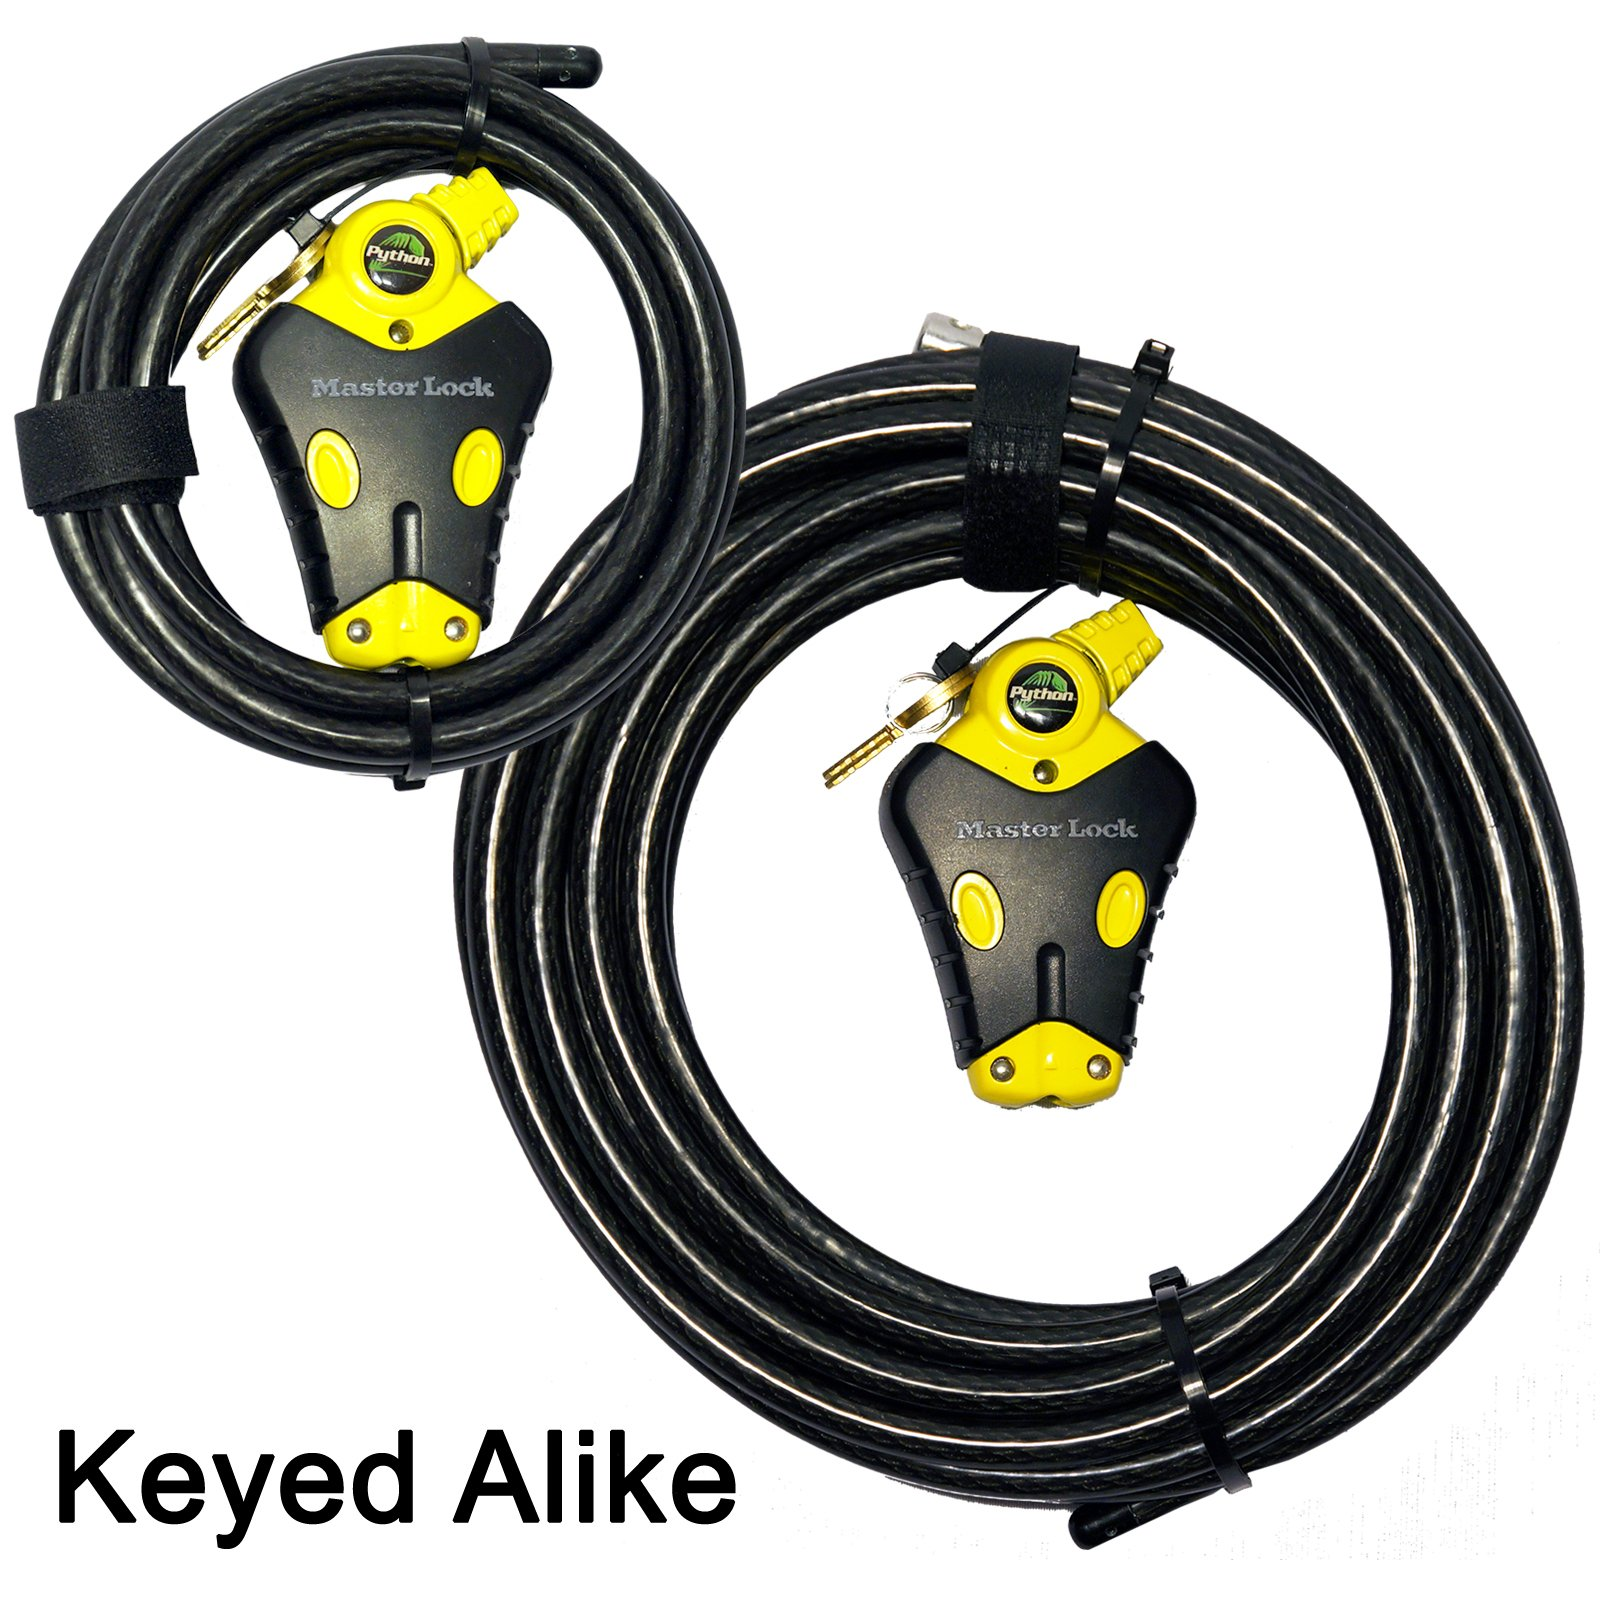 Master Lock - Two Python Adjustable Cable Locks Keyed Alike, 1-6ft, 1-30ft, #8413KACBL-6-30